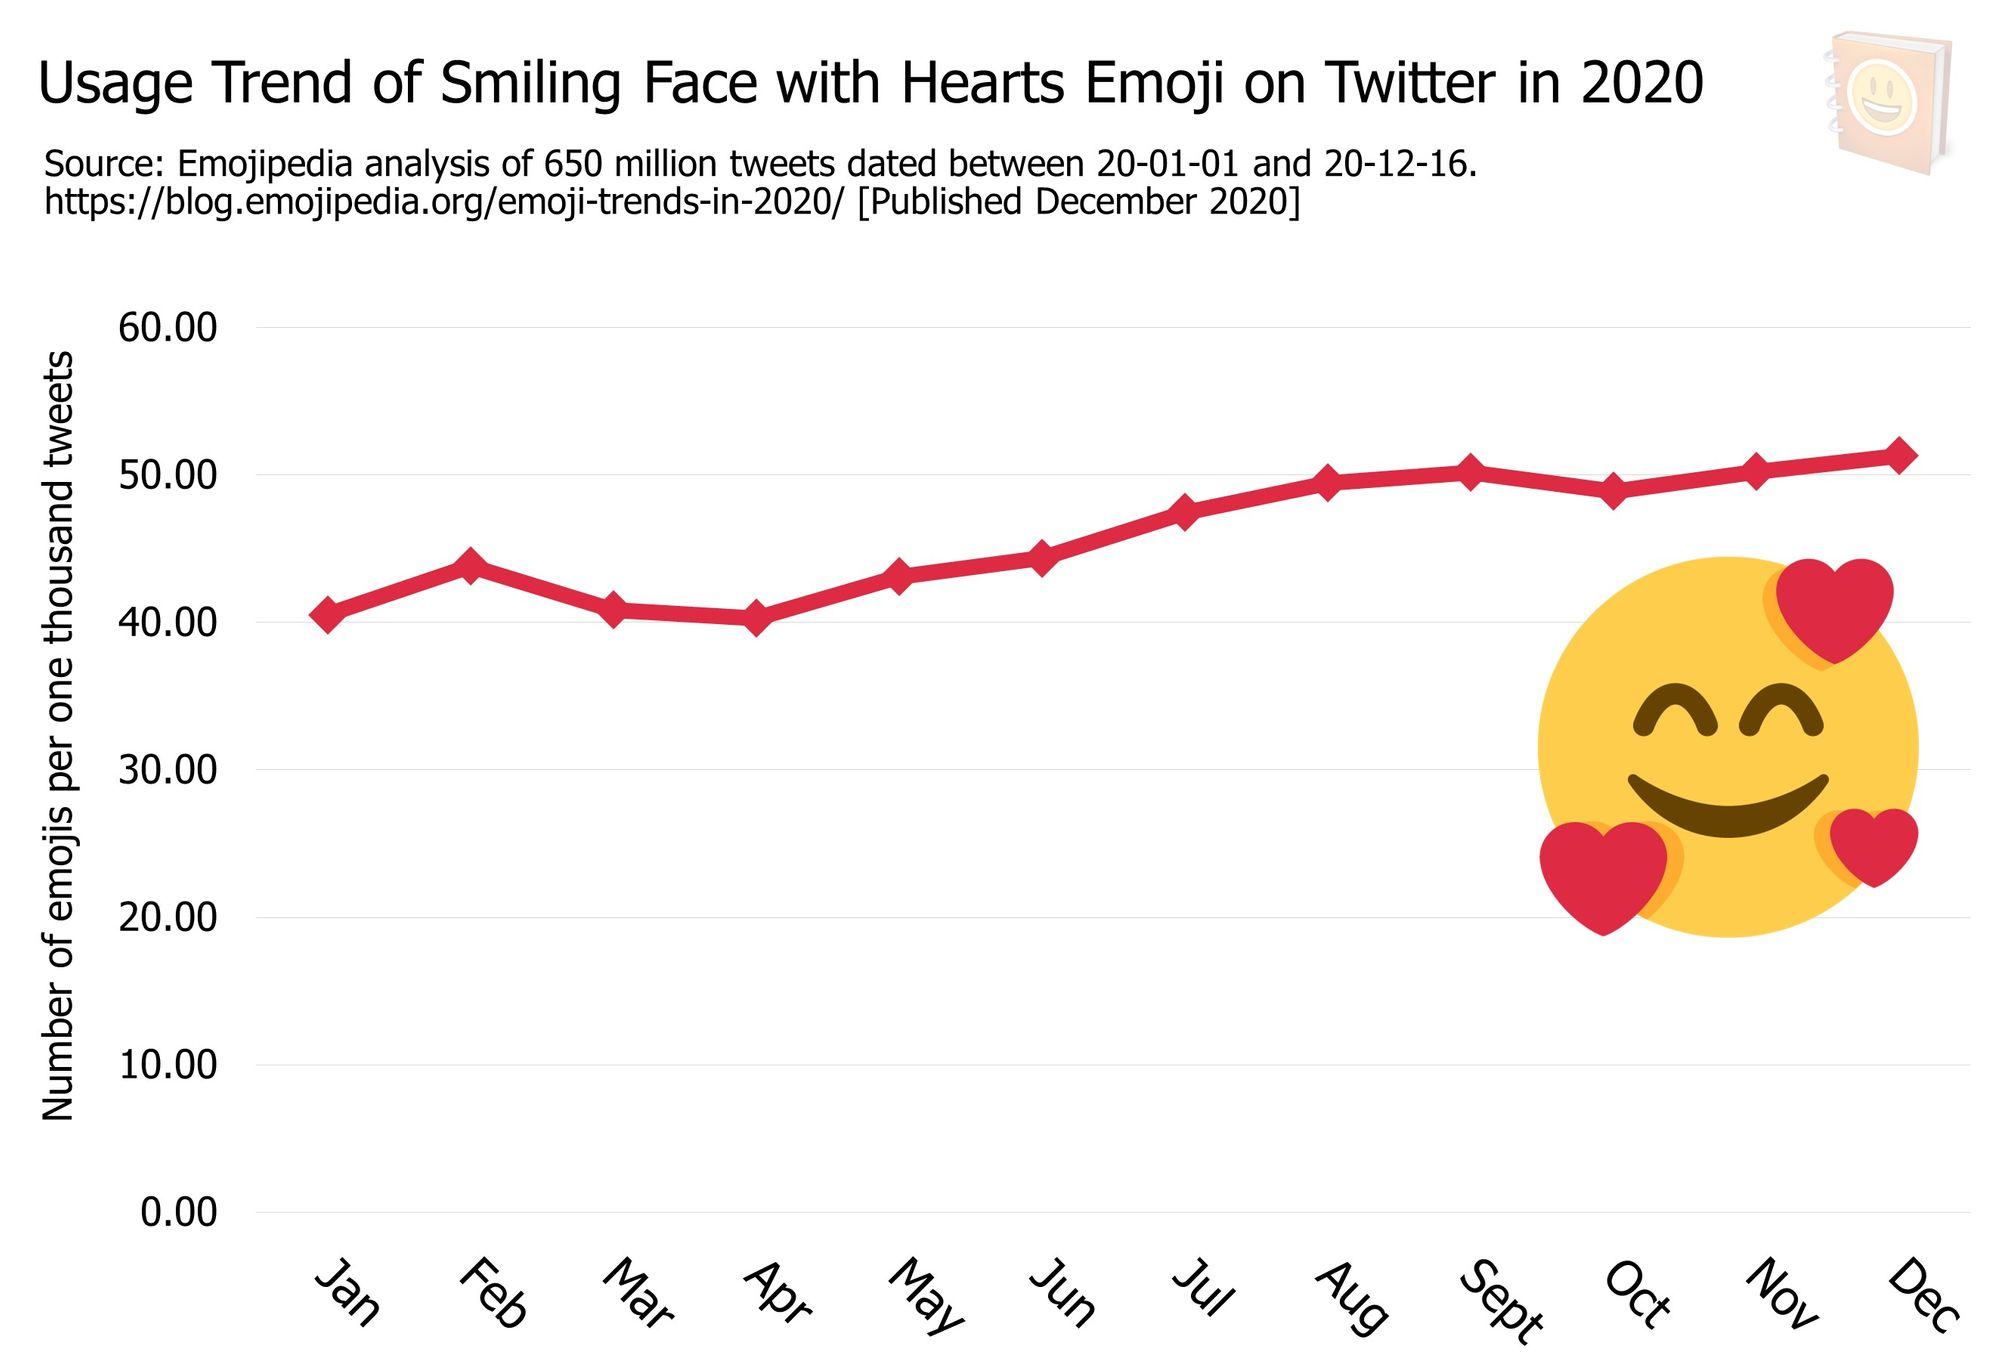 Emoji-Trends-In-2020---Usage-Trend-of-Smiling-Face-with-Hearts-Emoji-on-Twitter-in-2020